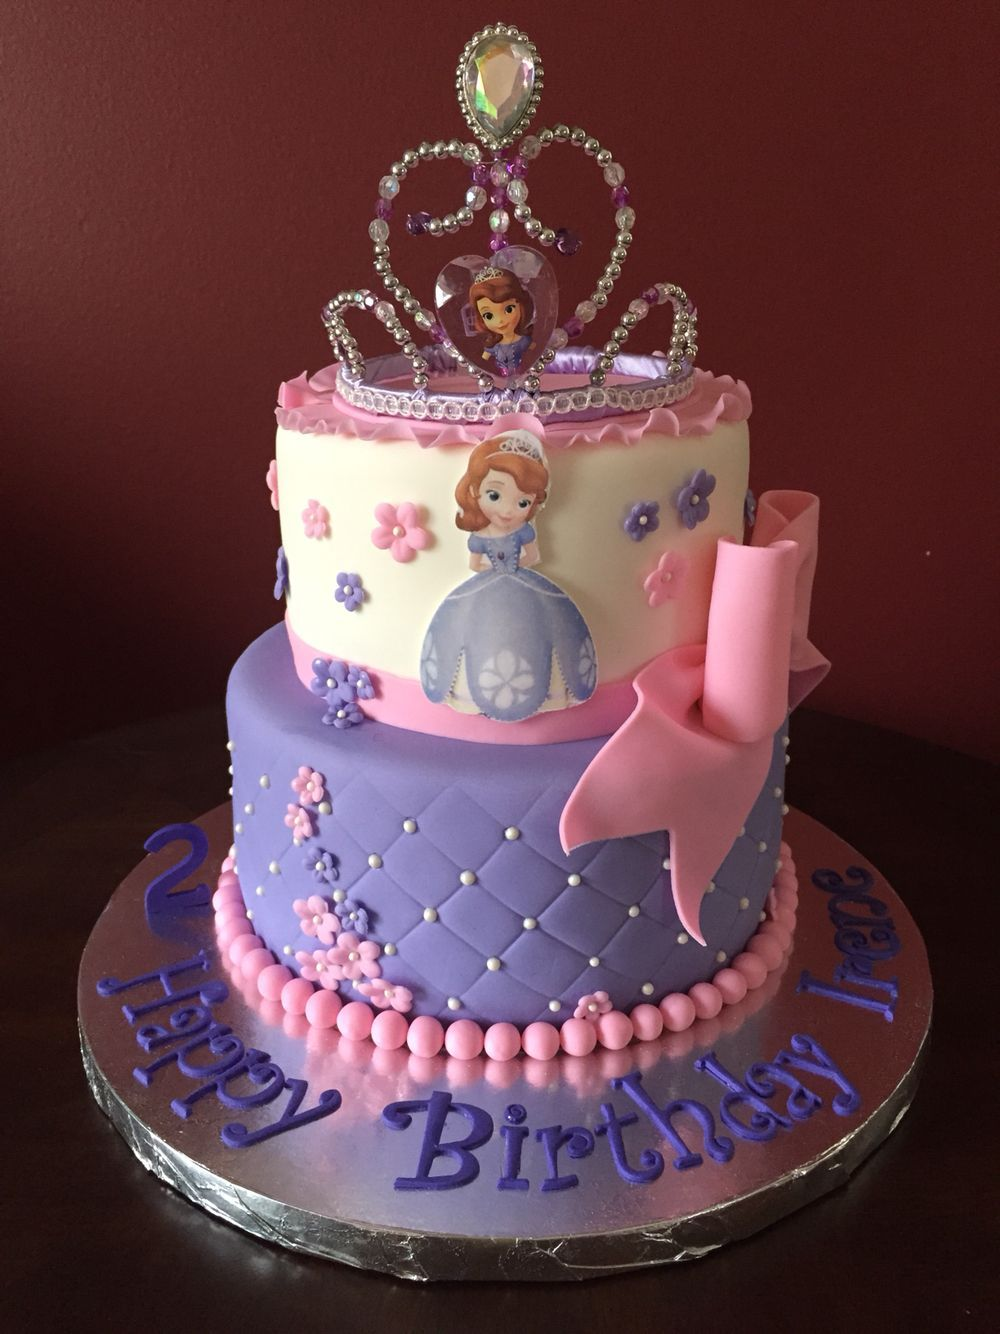 Pin by joanne guarin on Character Design Cake Pinterest